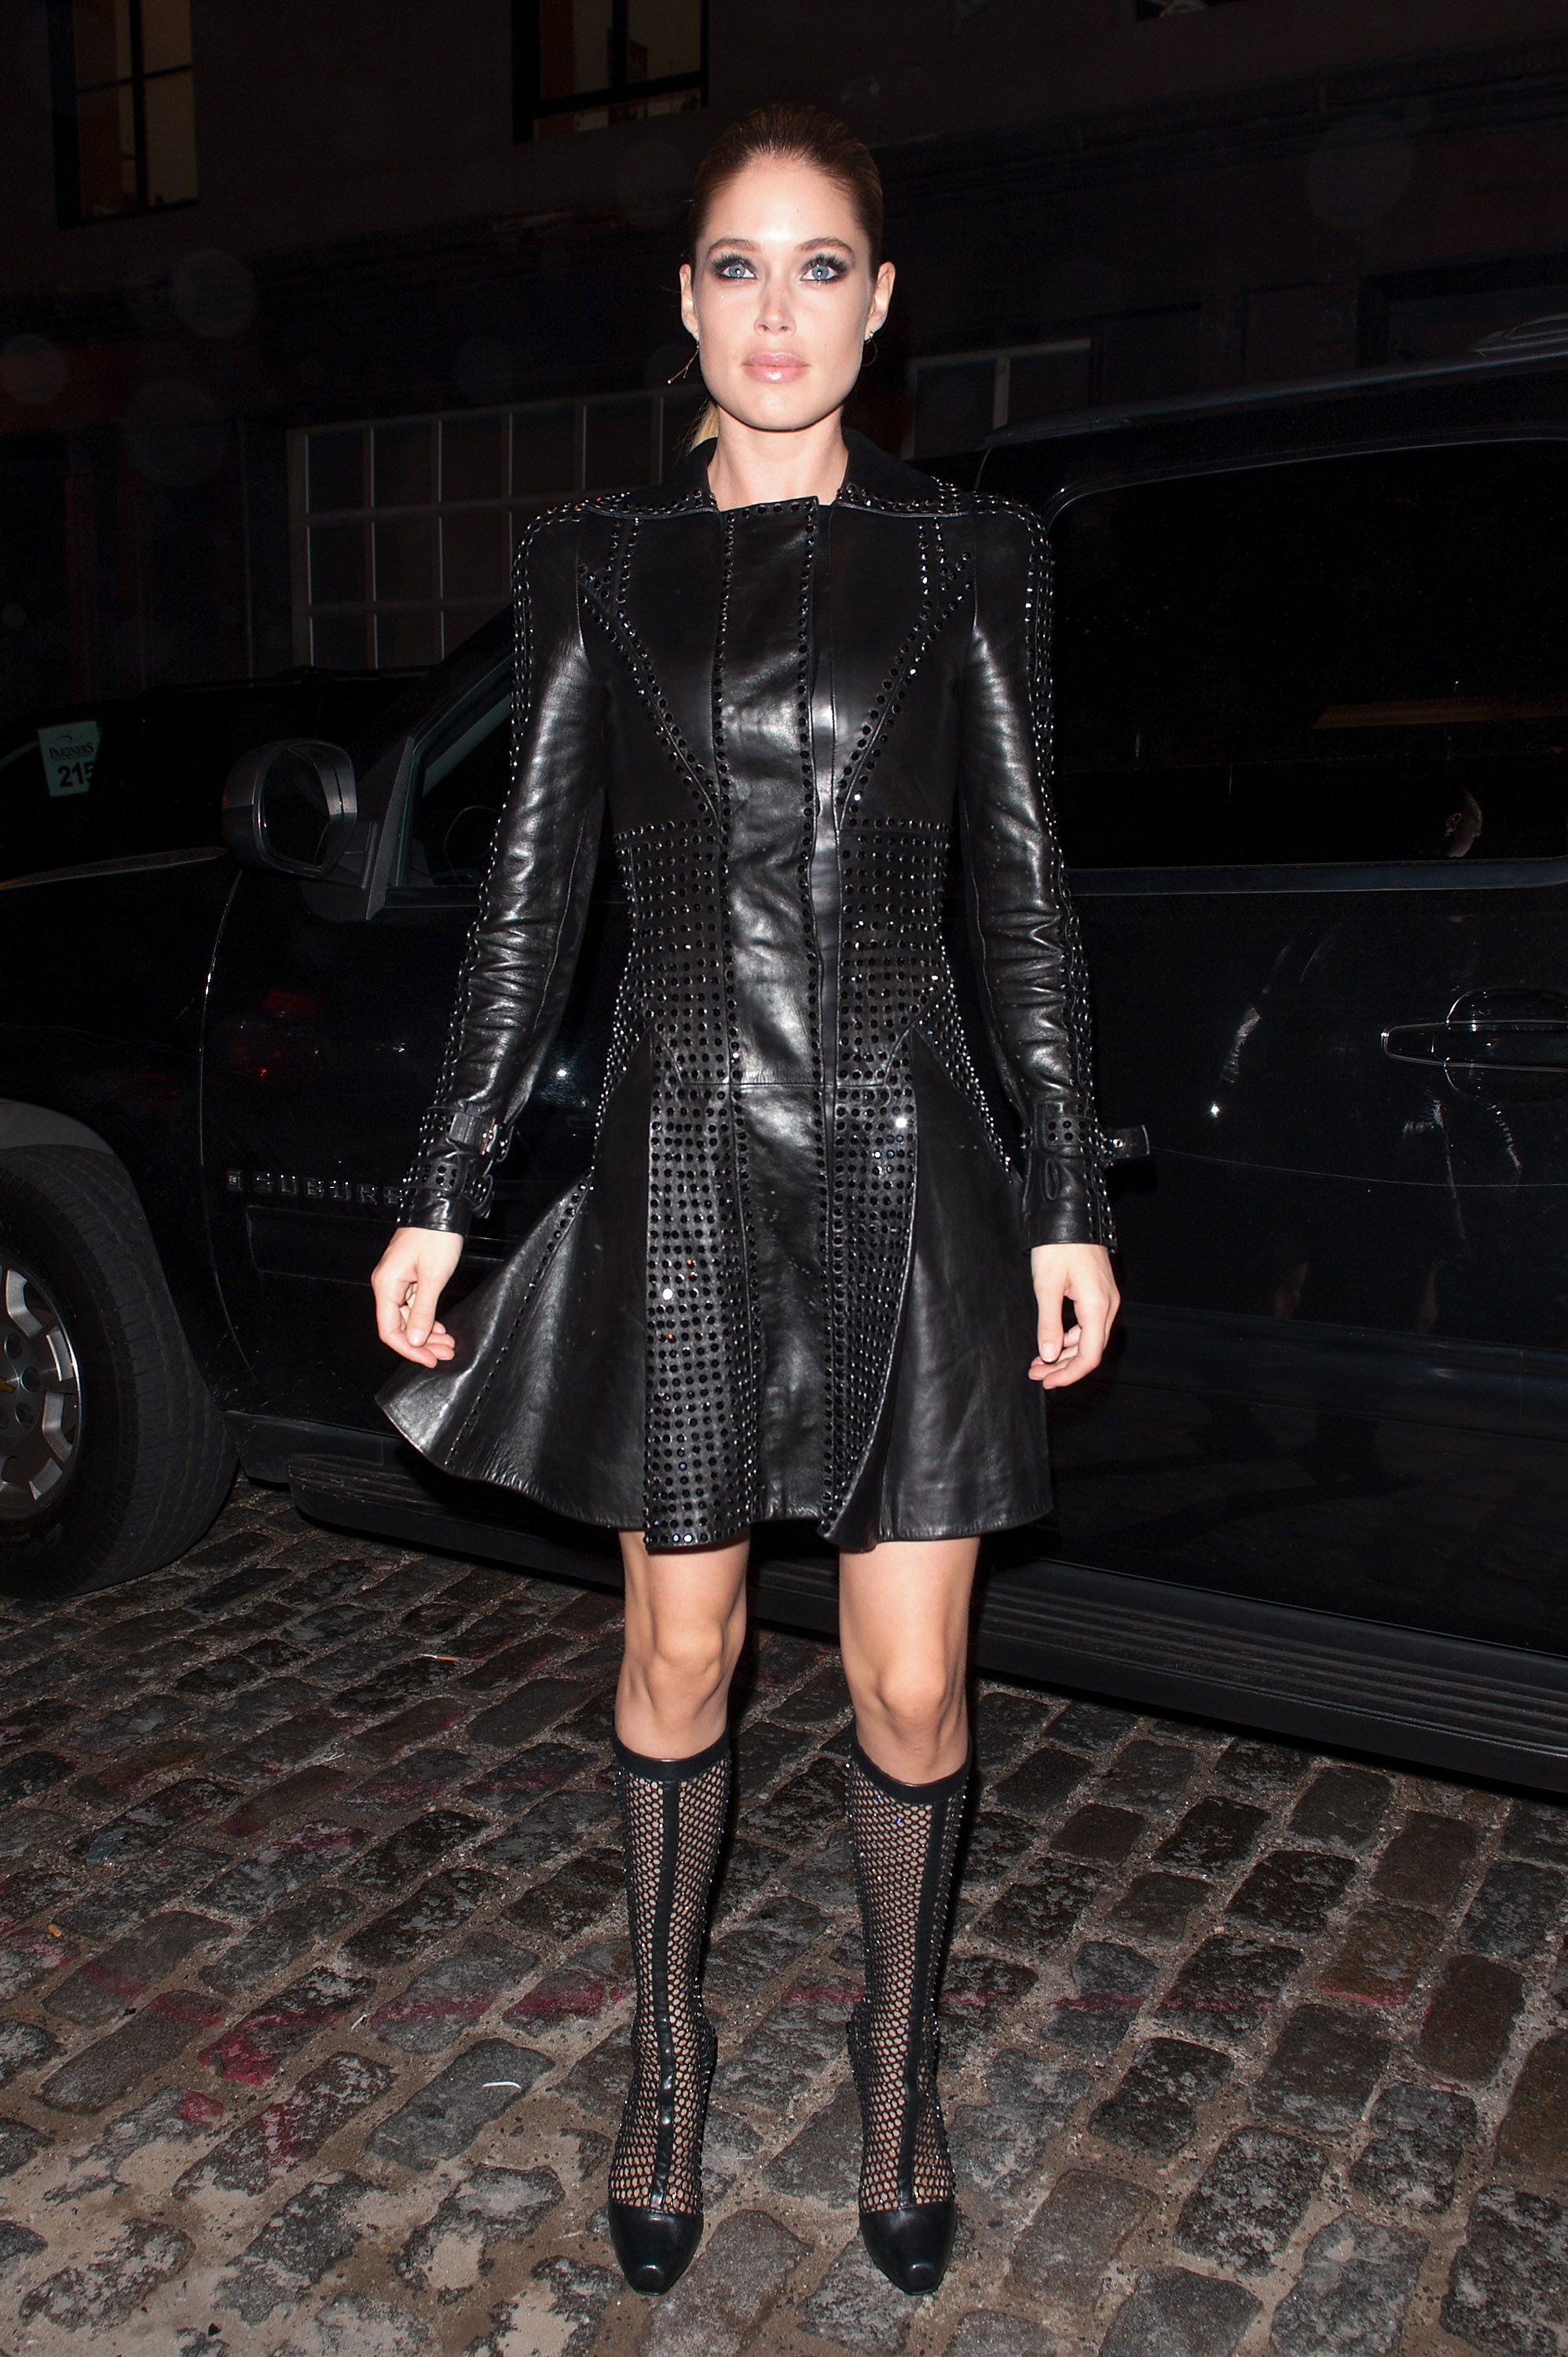 Black dress meaning - Doutzen Kroes S Black Studded Versace Coat Dress Gives New Meaning To The Term Babe In